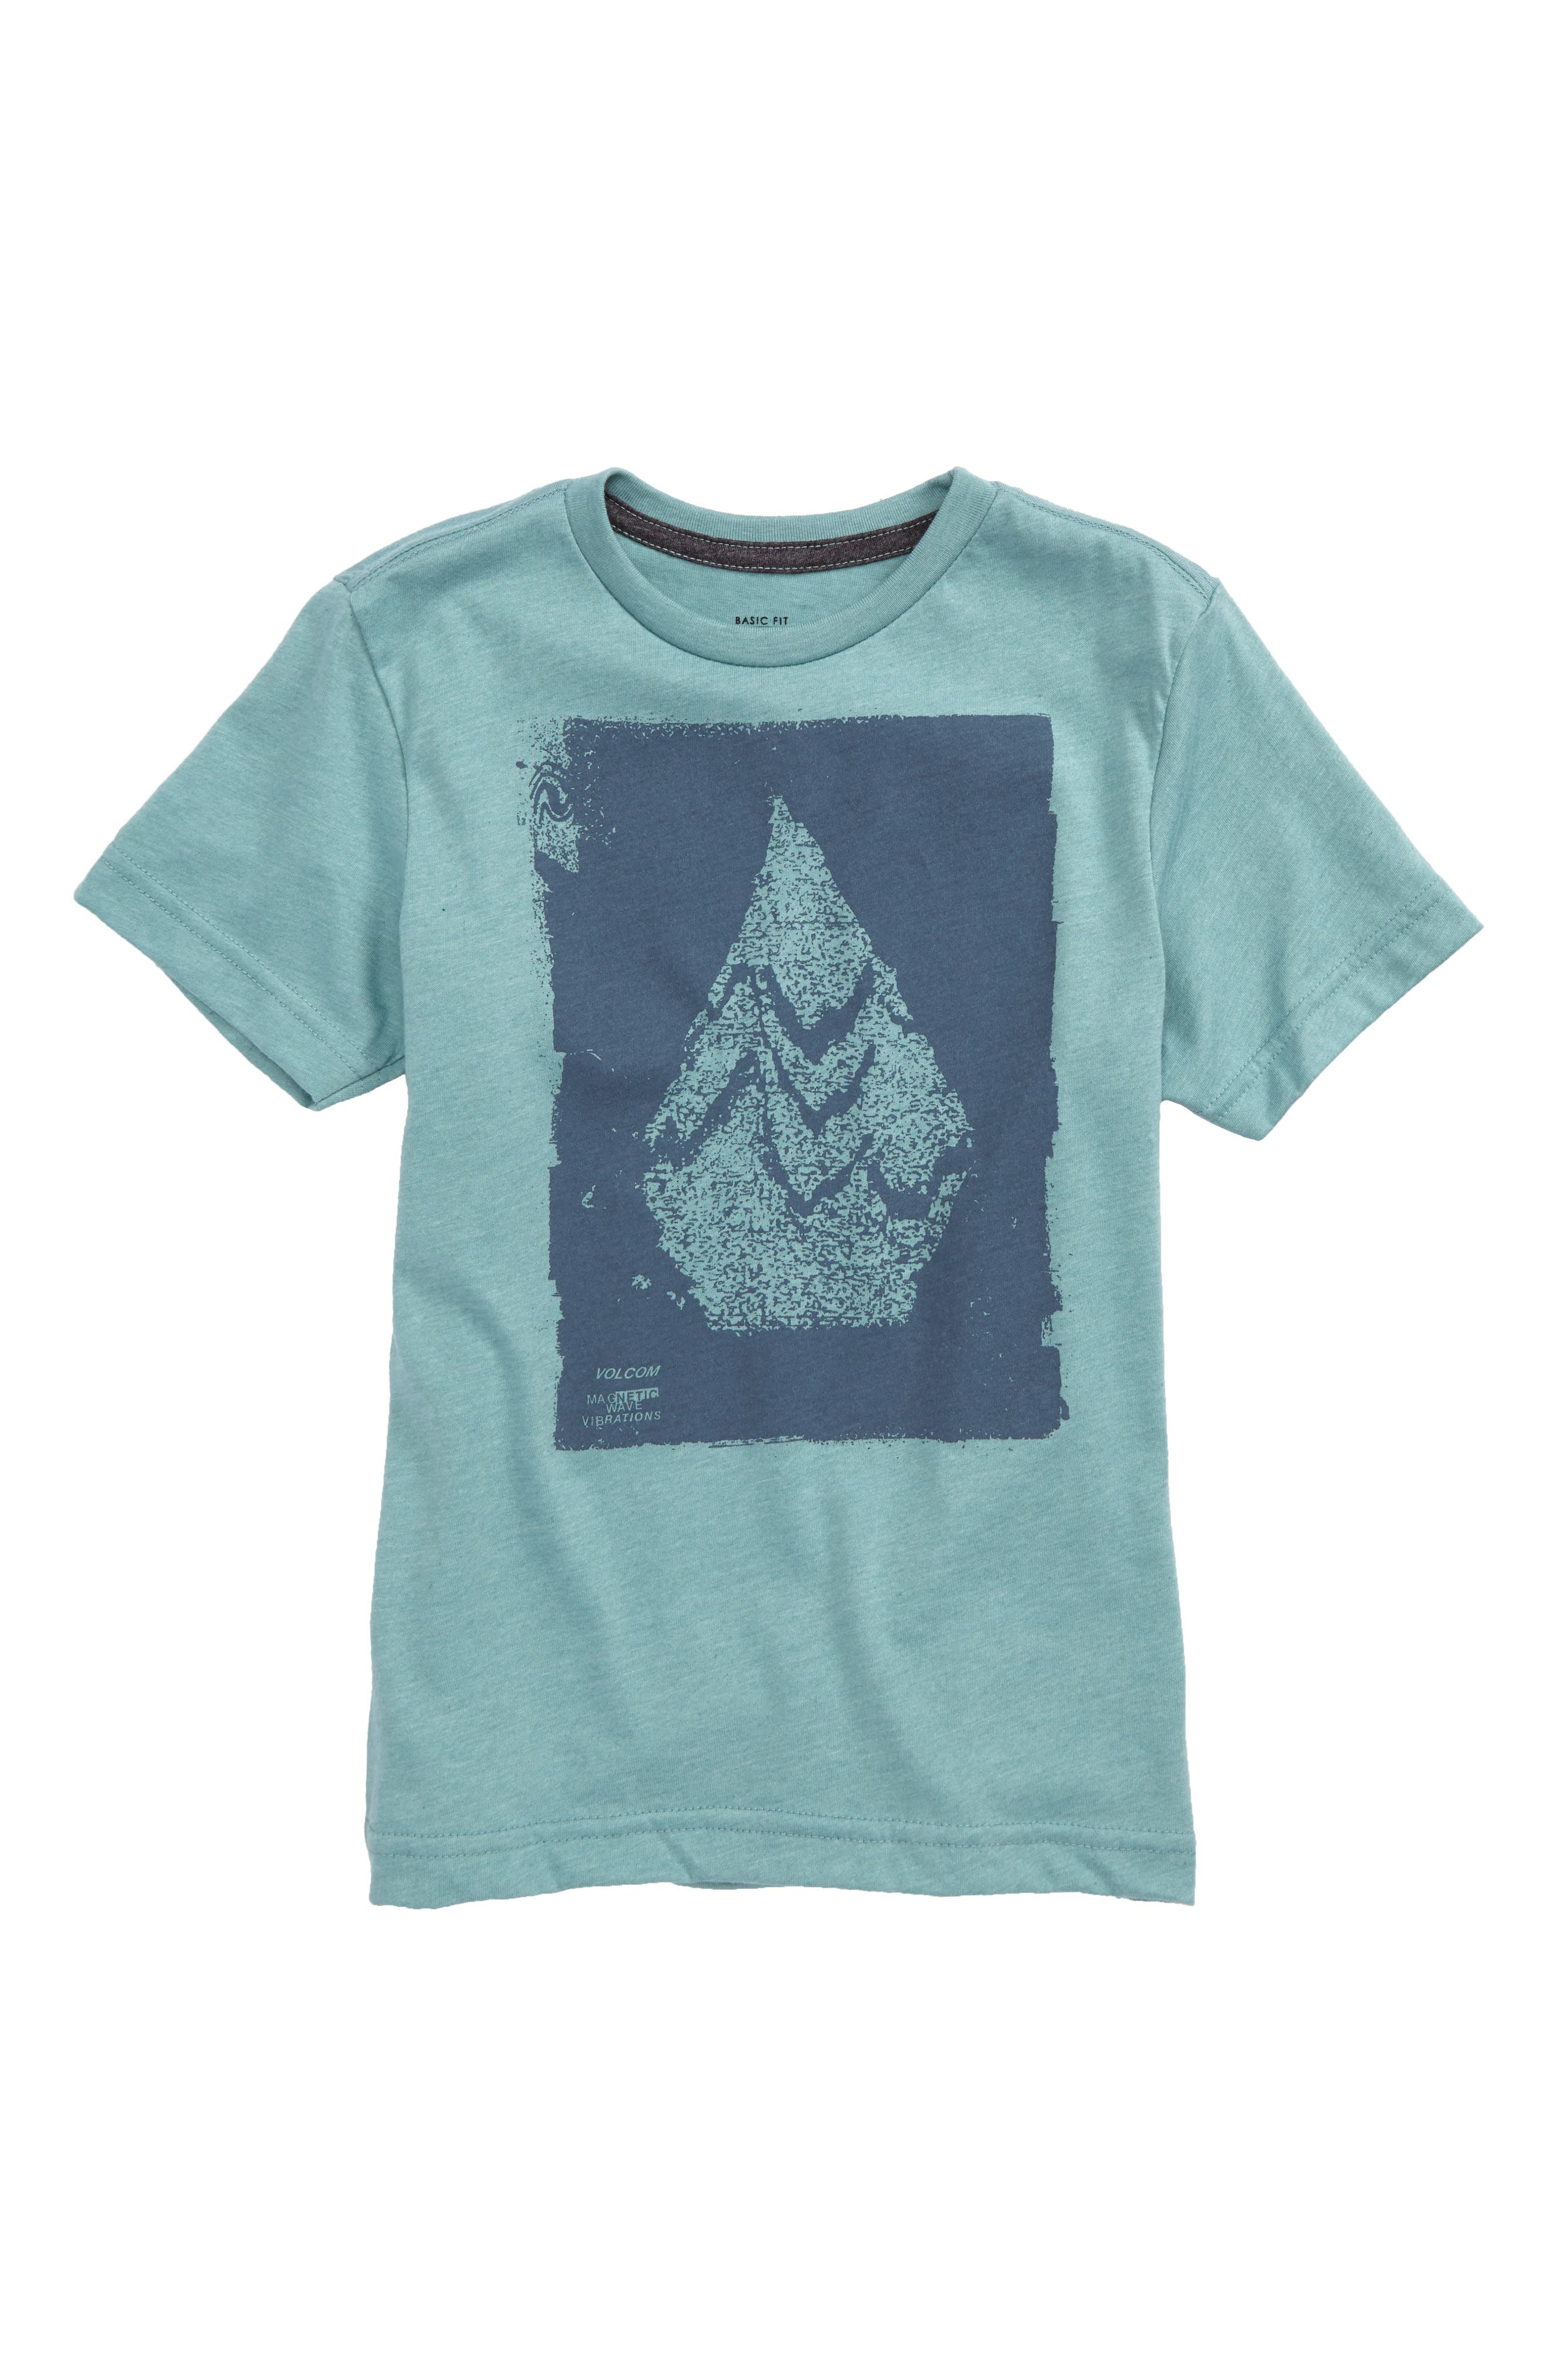 Disruption Graphic Shirt,                             Main thumbnail 1, color,                             Sea Blue